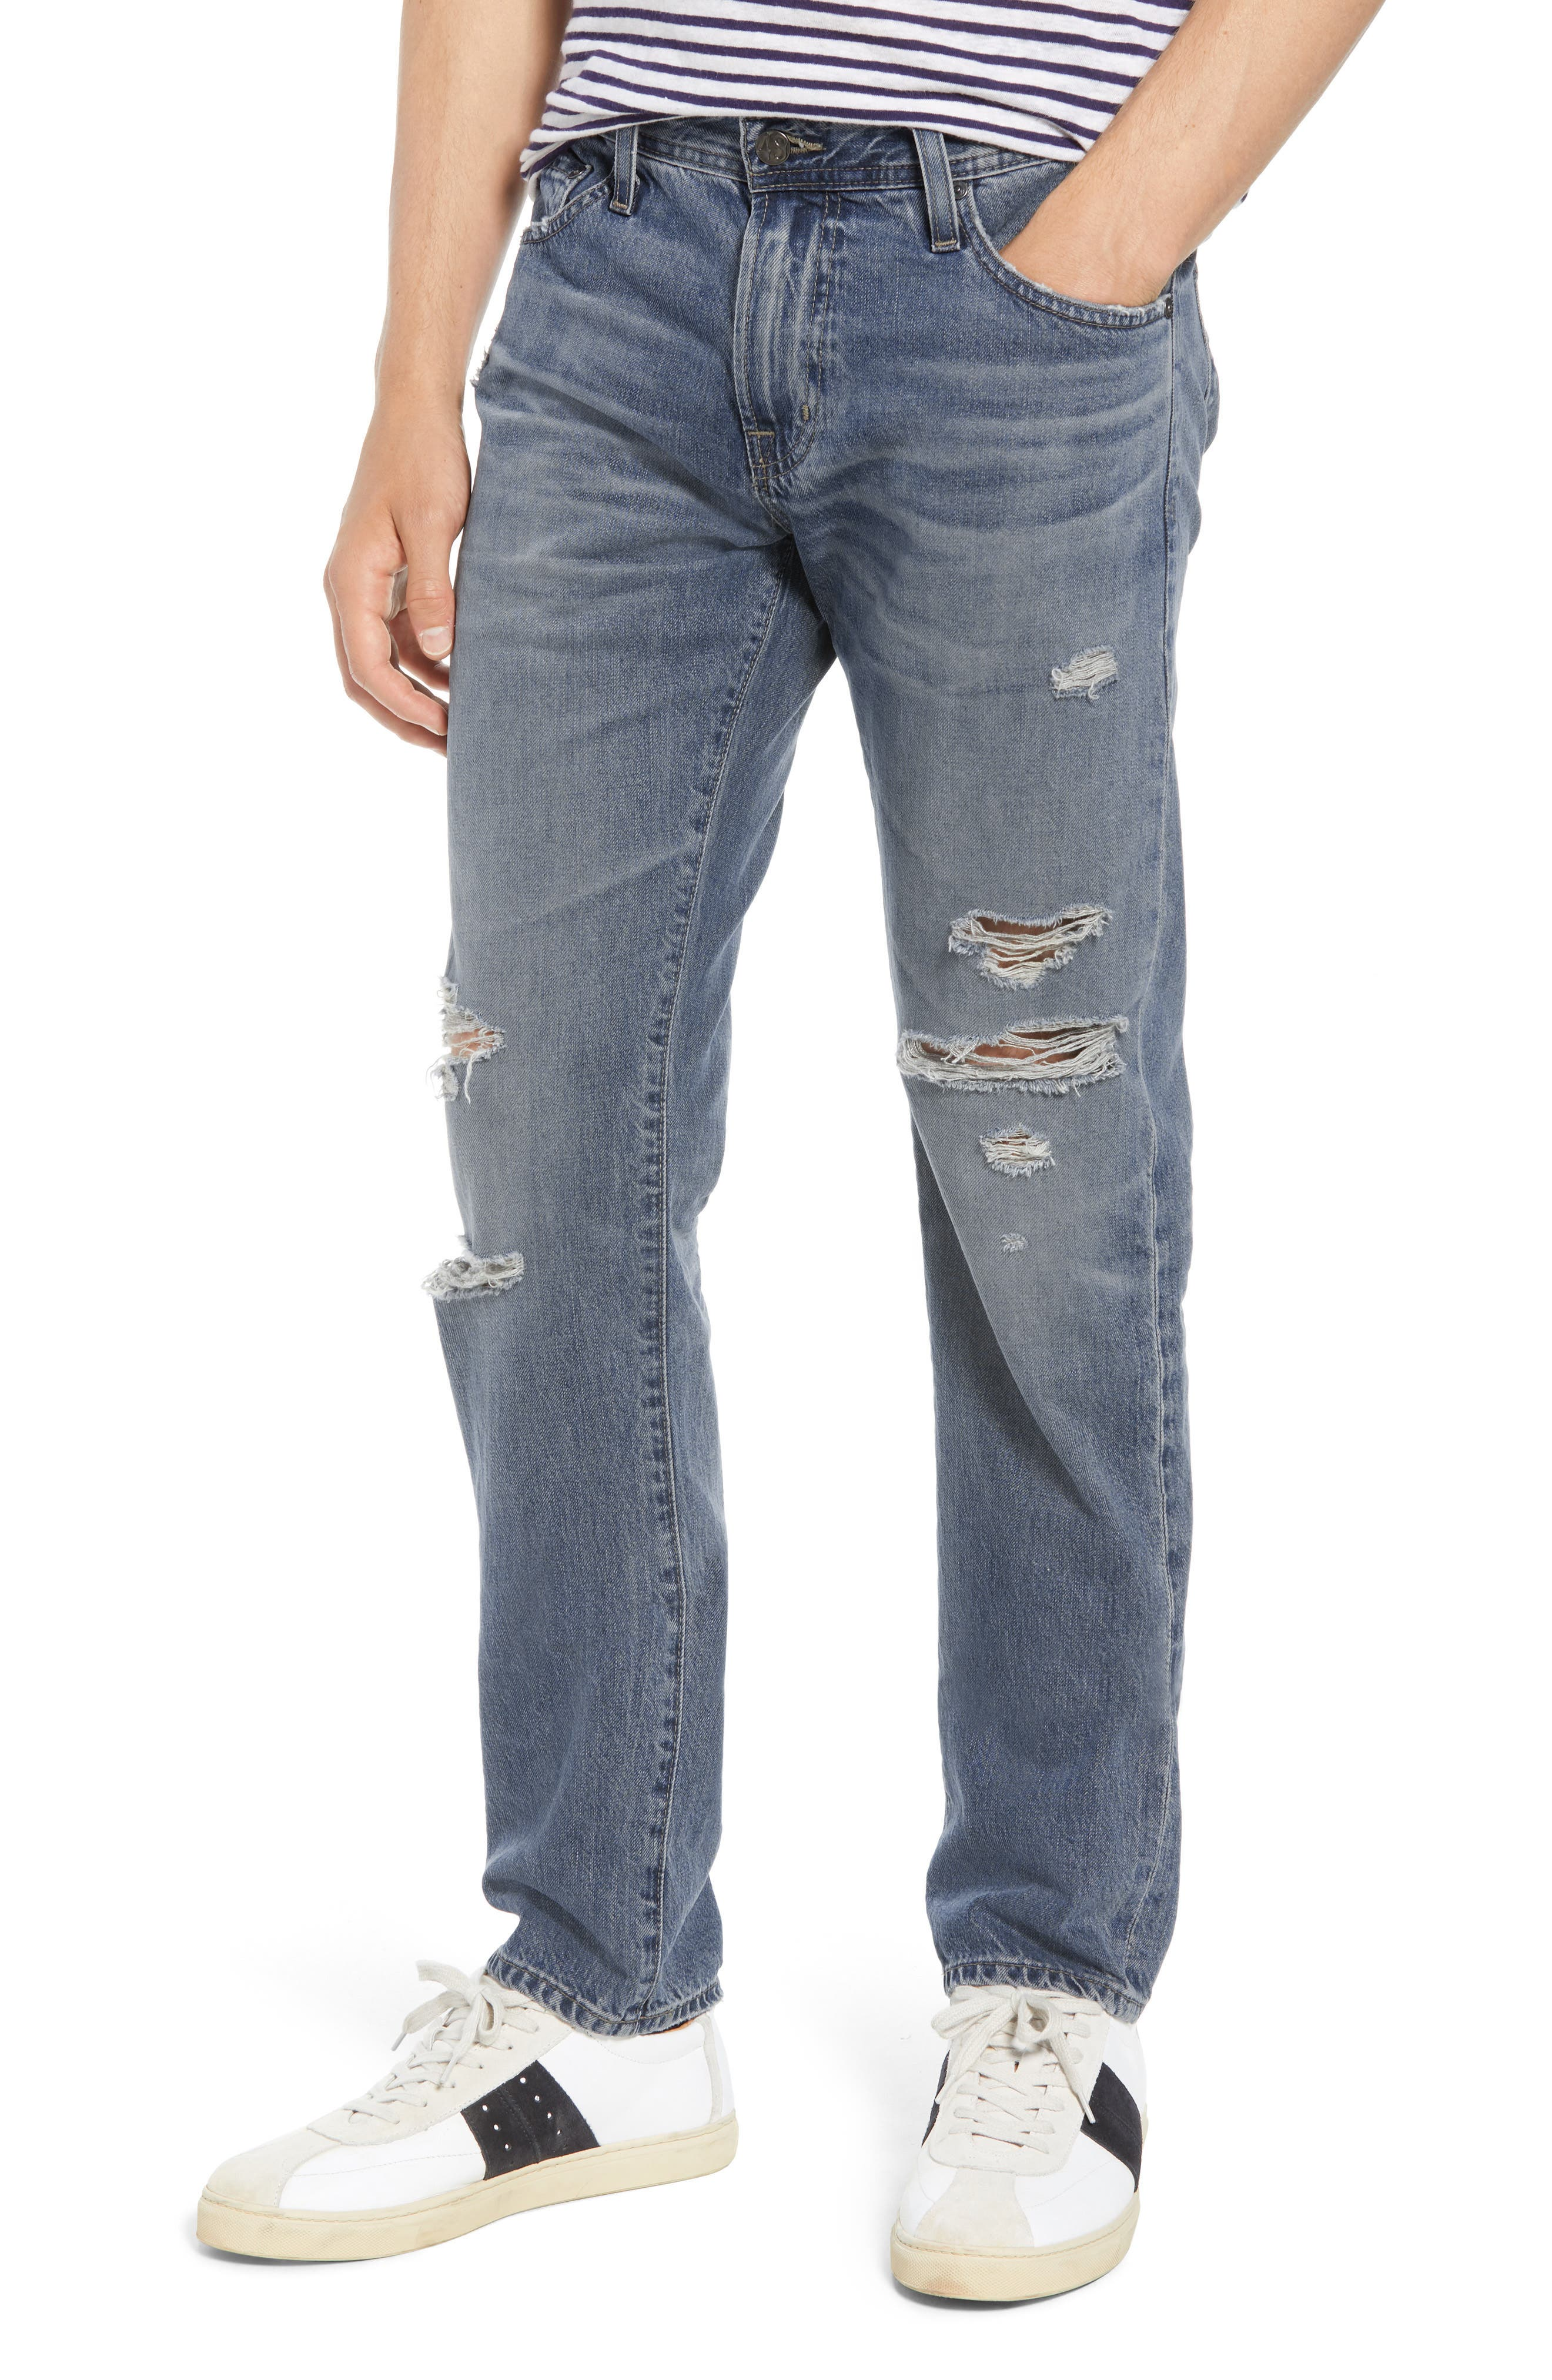 Tellis Slim Fit Jeans,                         Main,                         color, 18 YEARS UNDERWORLD